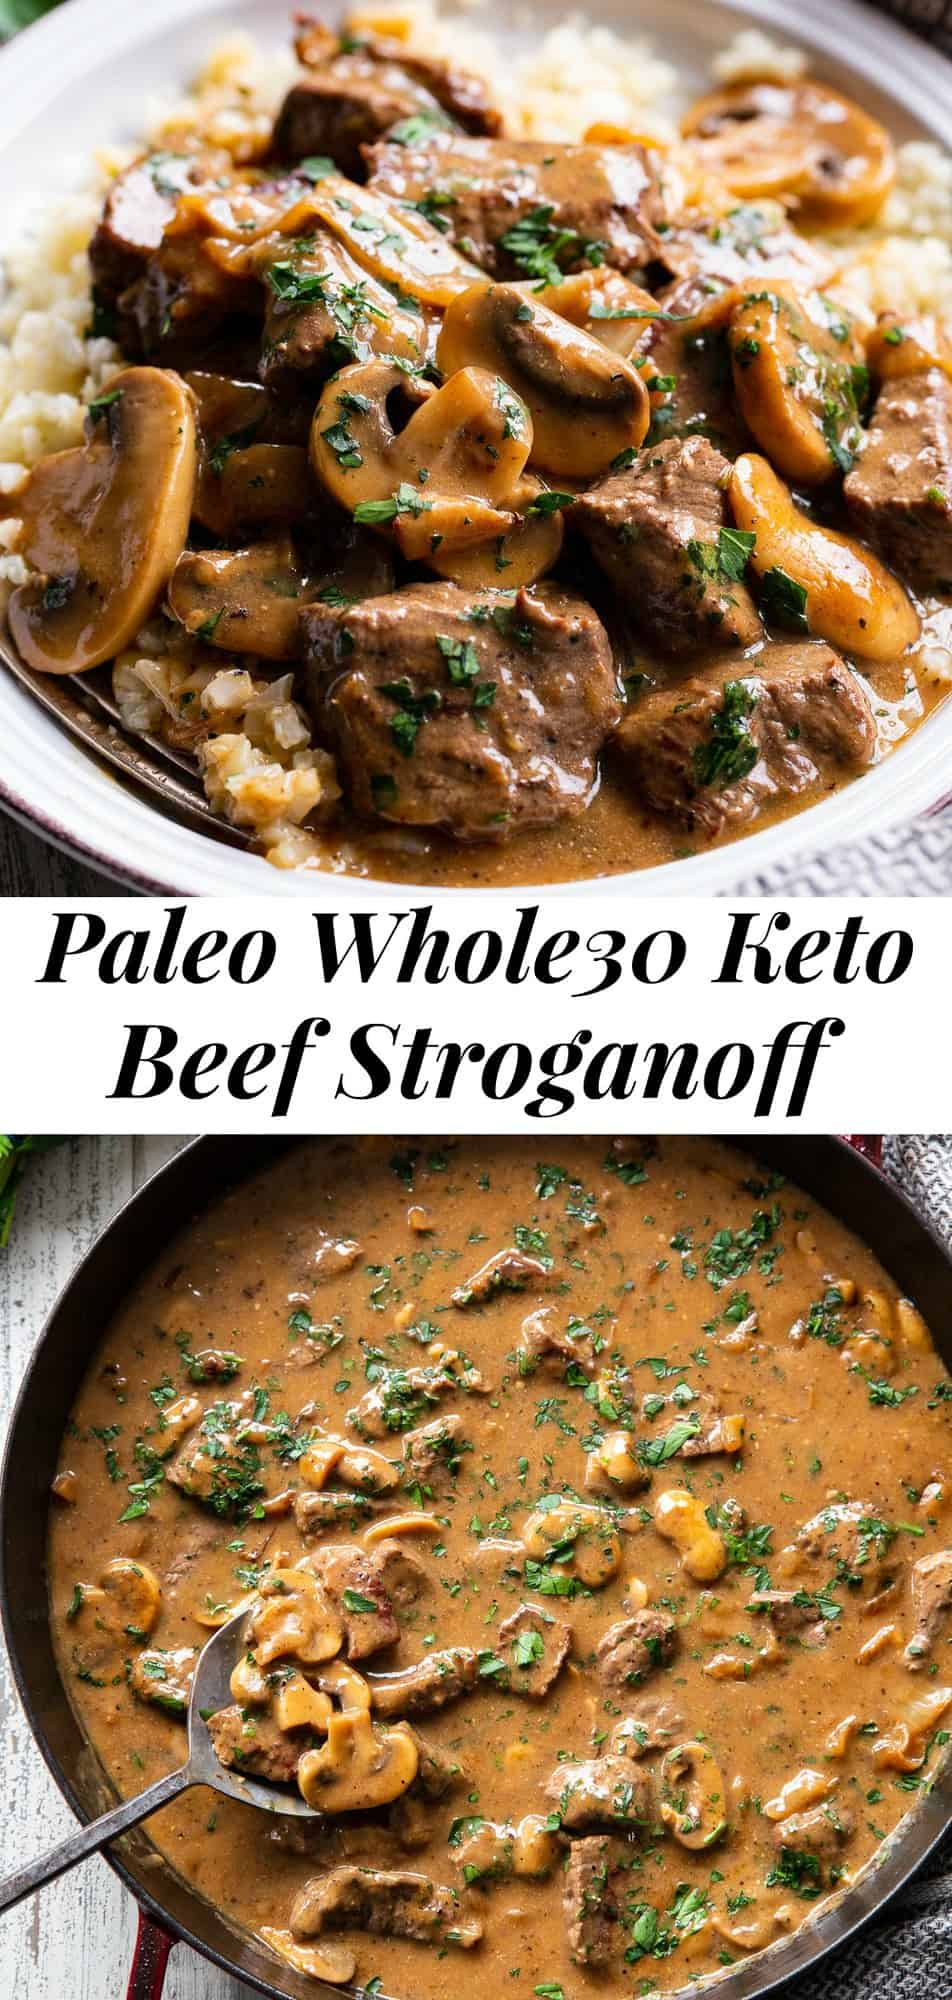 This hearty and savory paleo beef stroganoff is made all in one skillet for a quick, delicious and cozy weeknight meal. It's Whole30 compliant, low carb and keto and perfect served over sautéed cauliflower rice or your favorite veggie noodles! #paleo #whole30 #cleaneating #keto #lowcarb